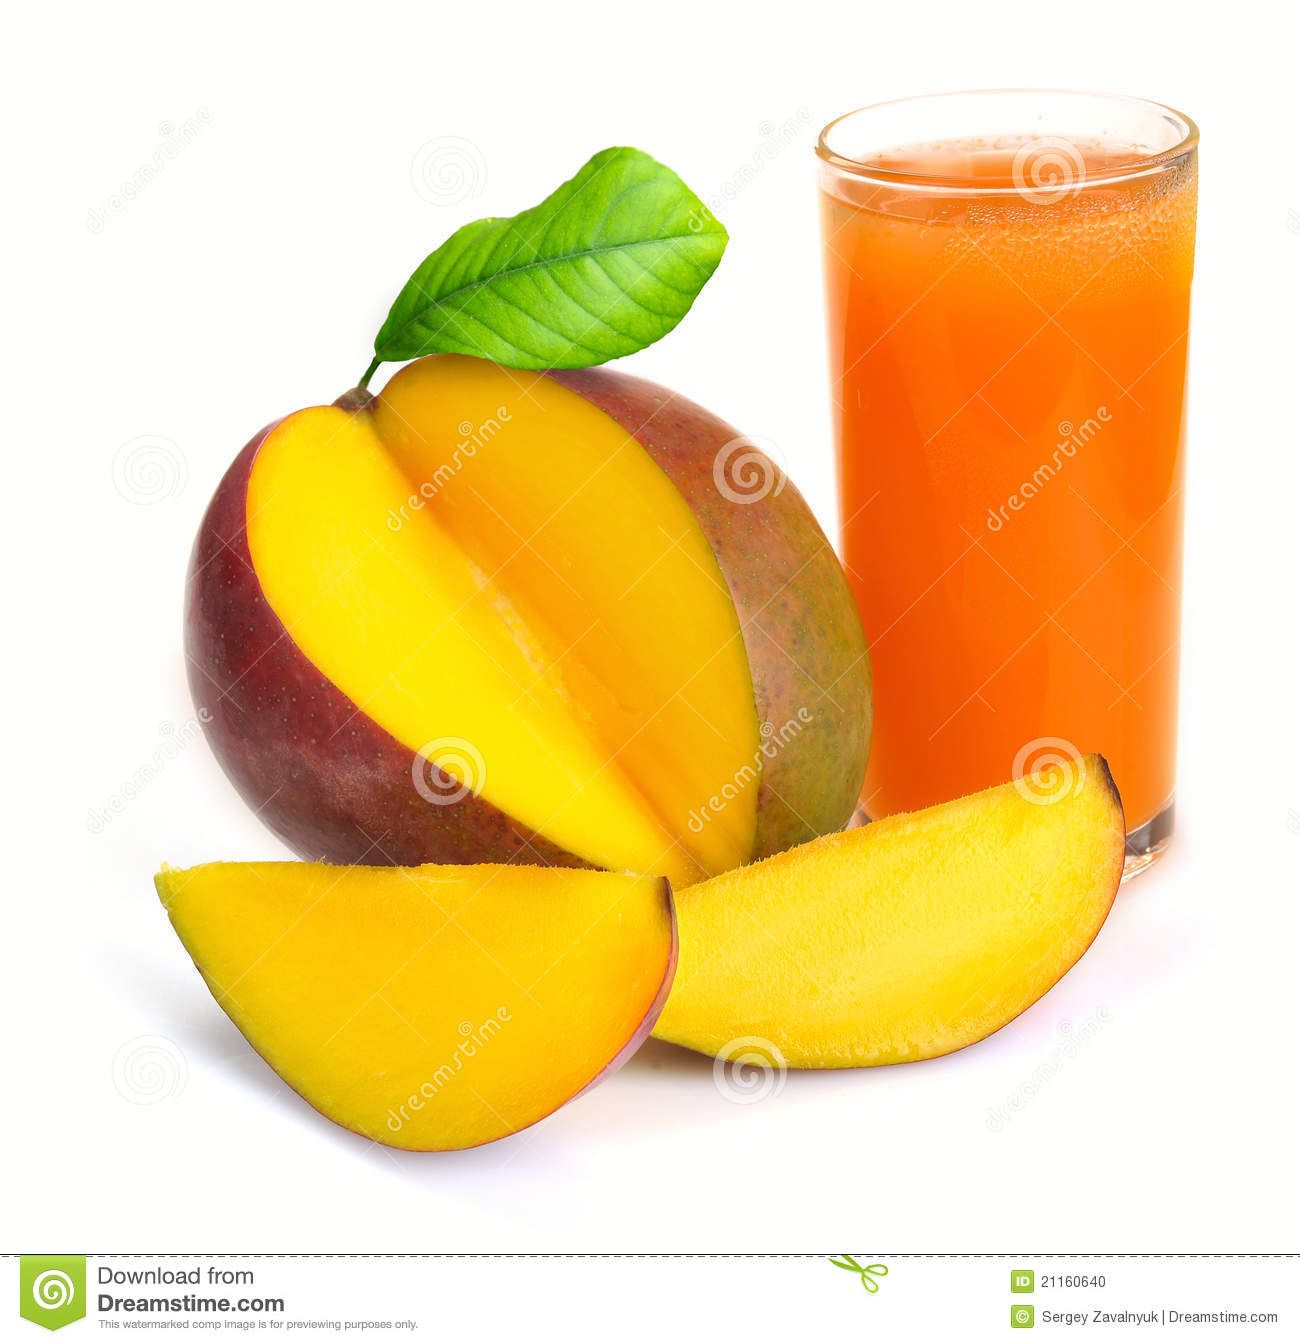 Processing and Preservation Methods of Mango Varieties Along the Value Chain in Kenya